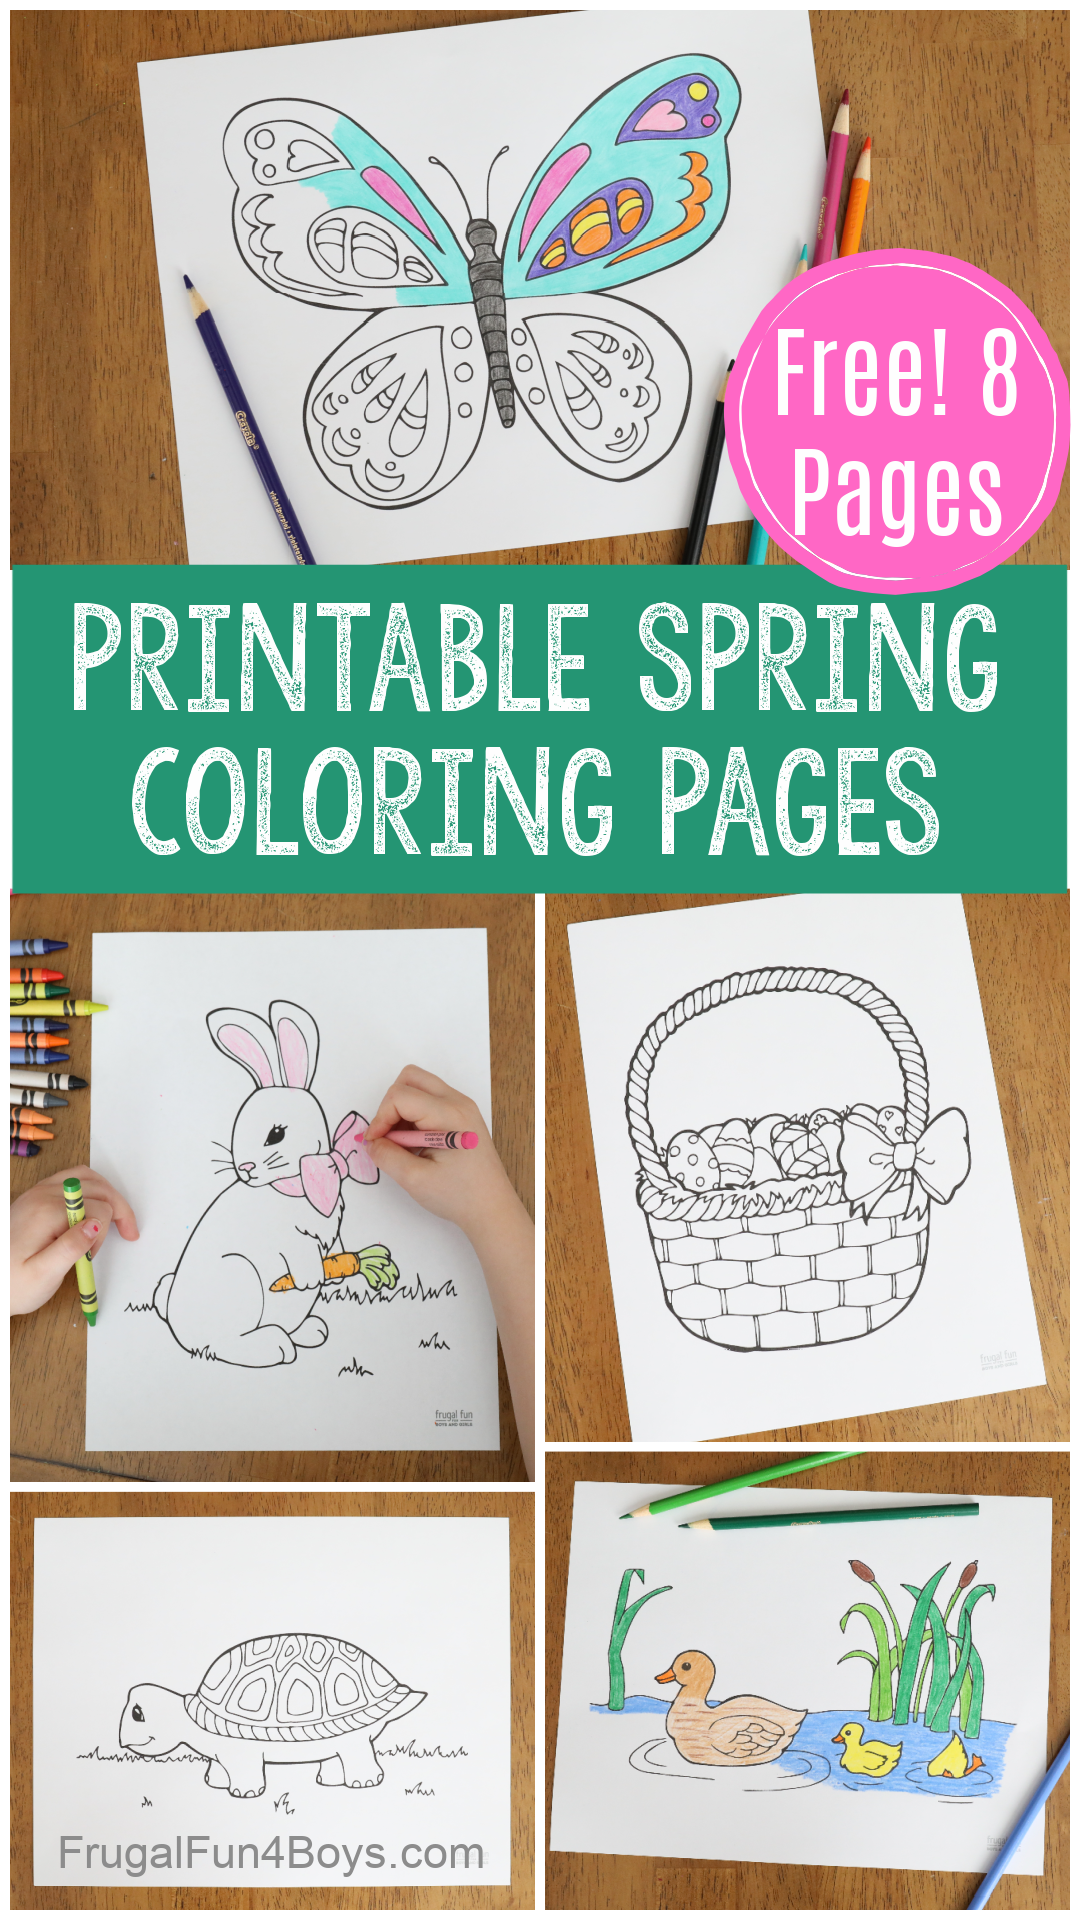 spring coloring pages - butterfly, turtle, bunny, ducks